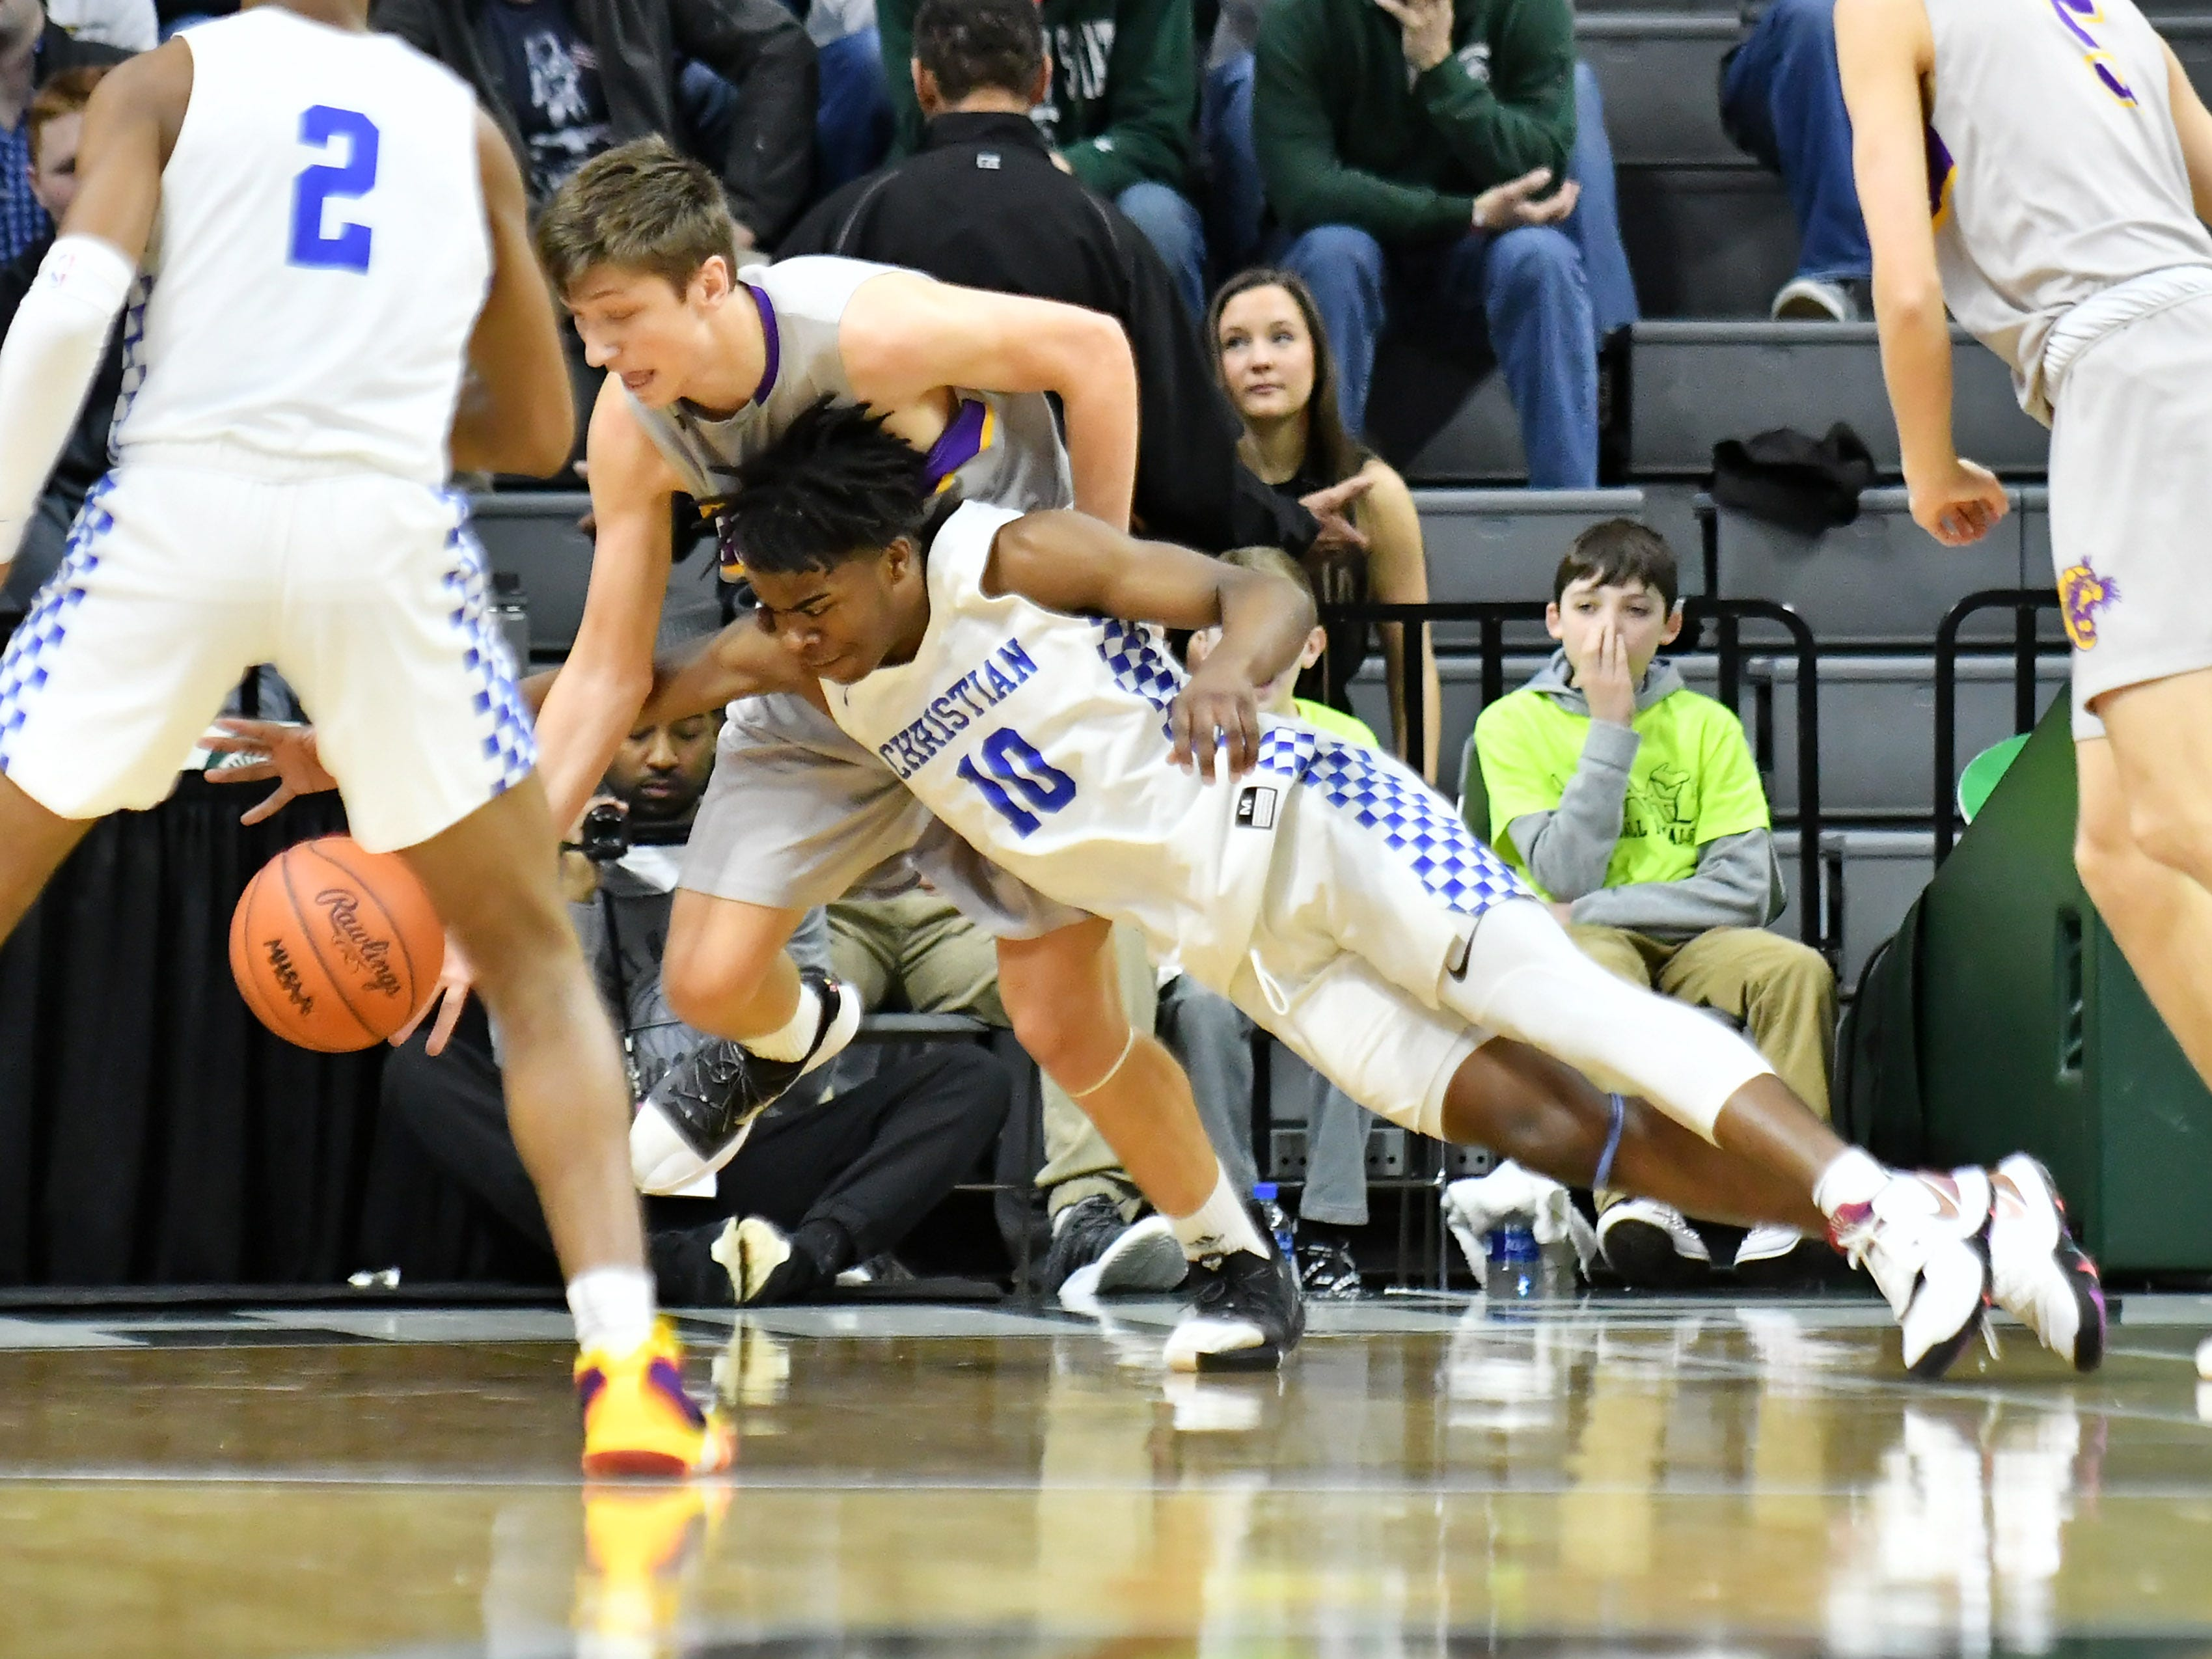 Southfield Christian guard Jon Sanders (10) and Frankfort guard Jack Stefanski (0) go for a loose ball in the first half.